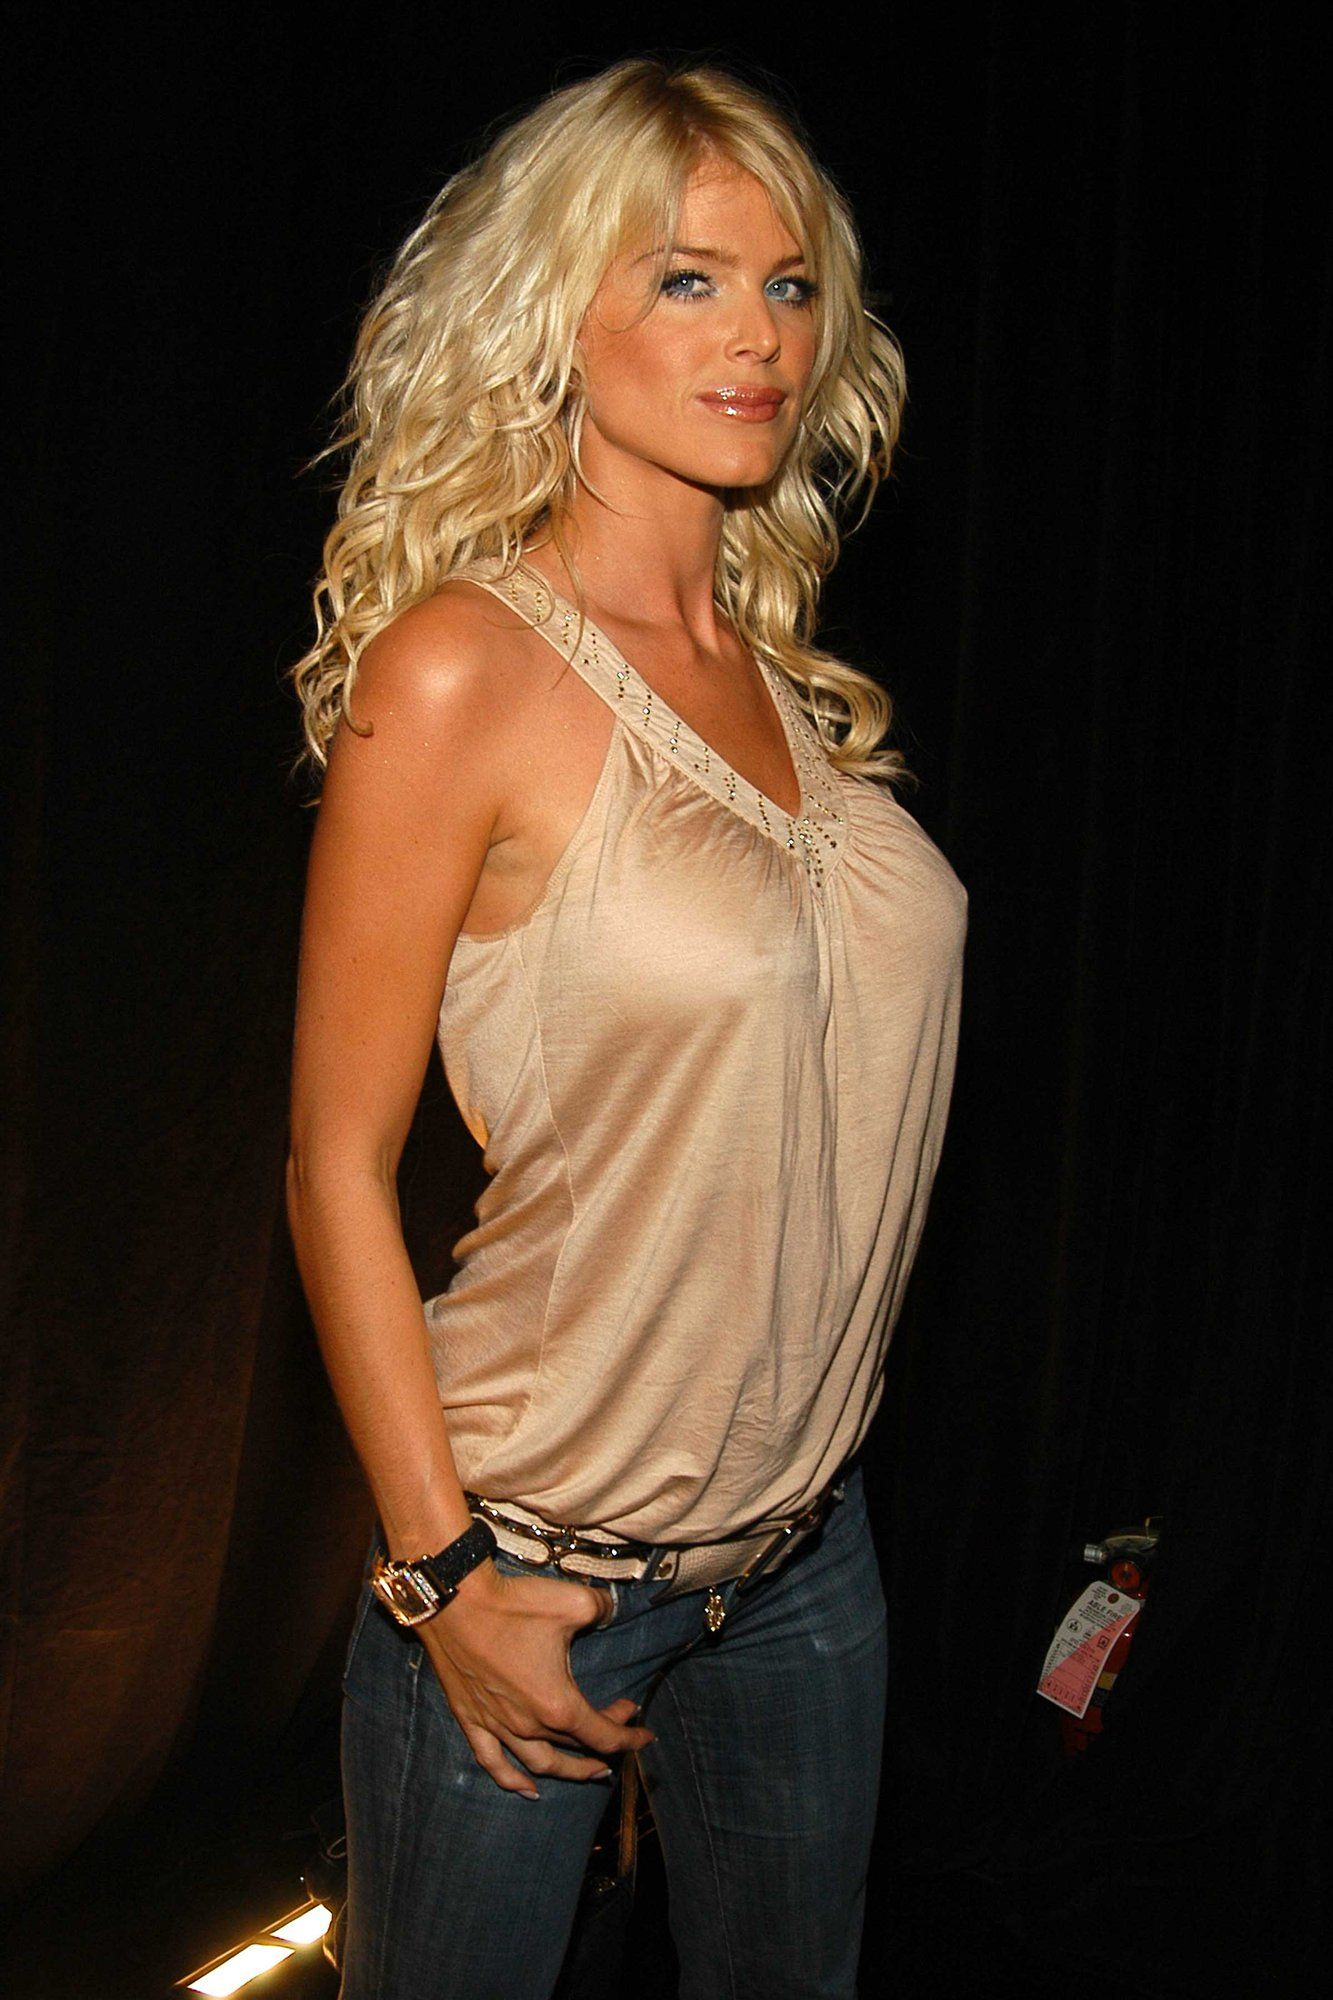 Victoria Silvstedt Photoshoot